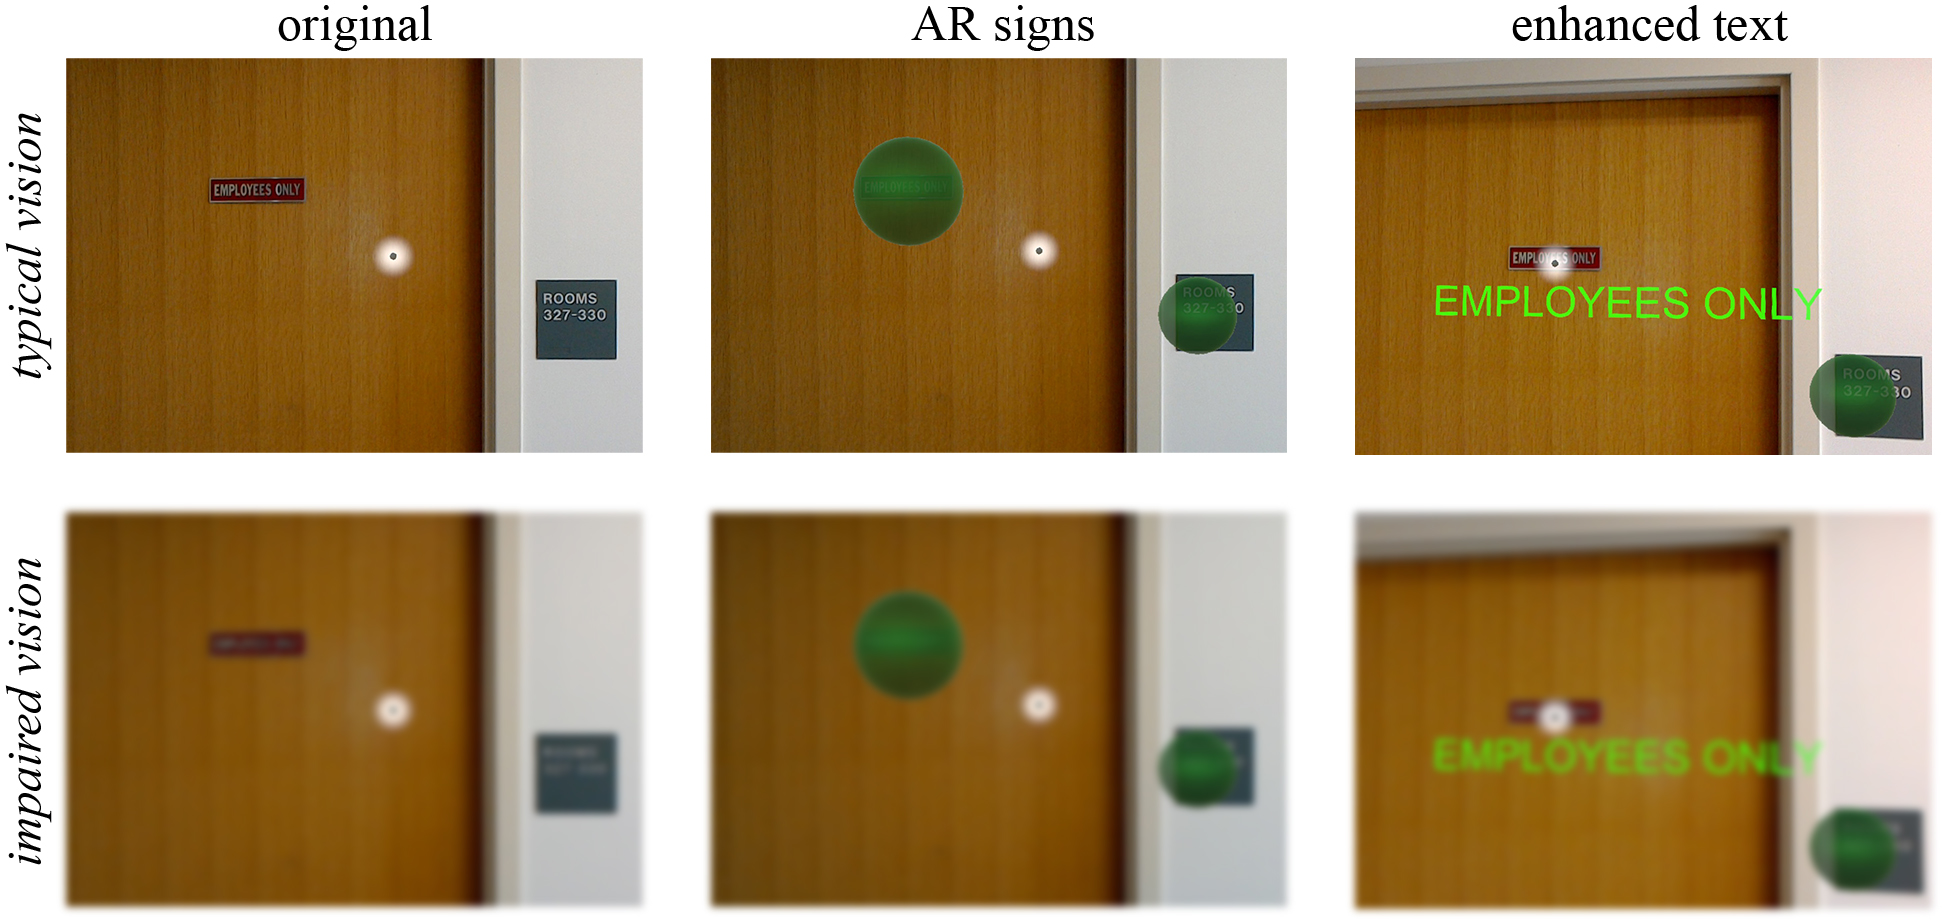 Figure from the paper illustrating the AR application in use (green spheres are areas tagged as text by the AR app).